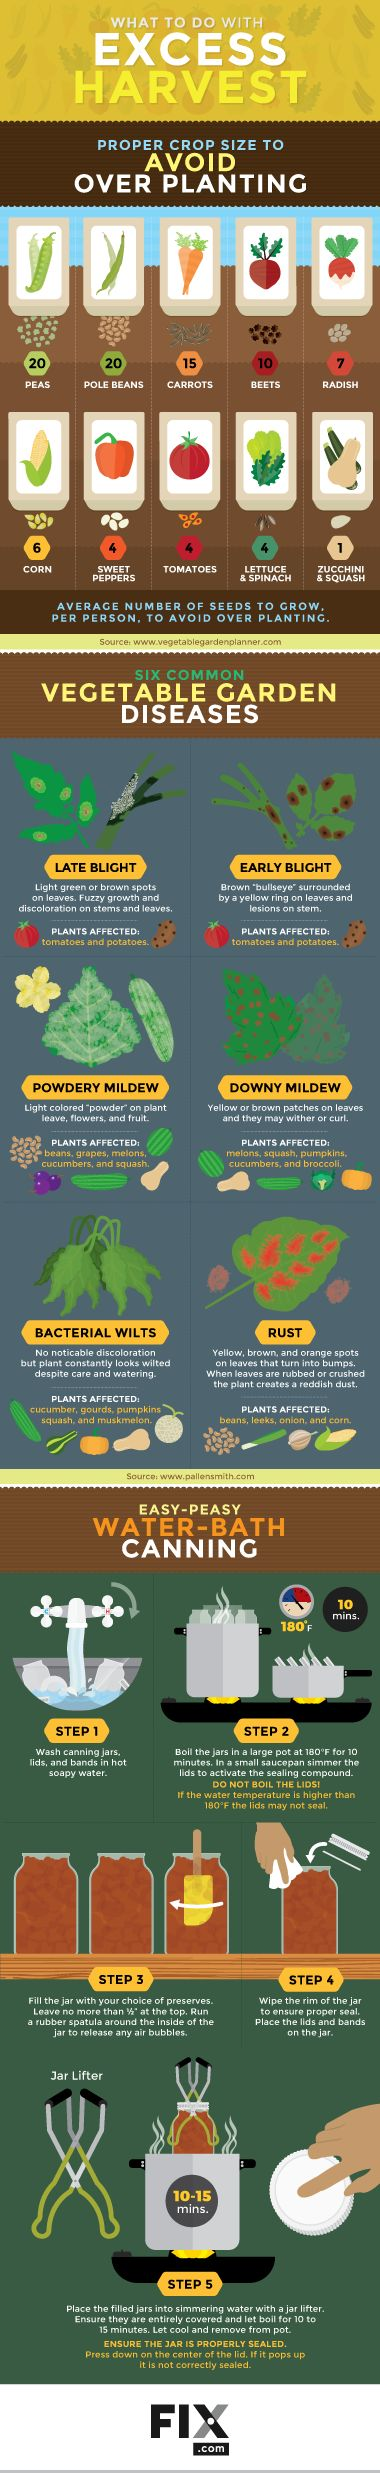 You've worked too hard to let good vegetables go to waste. Here's how to make the most of the extra produce from your garden at the end of the season.